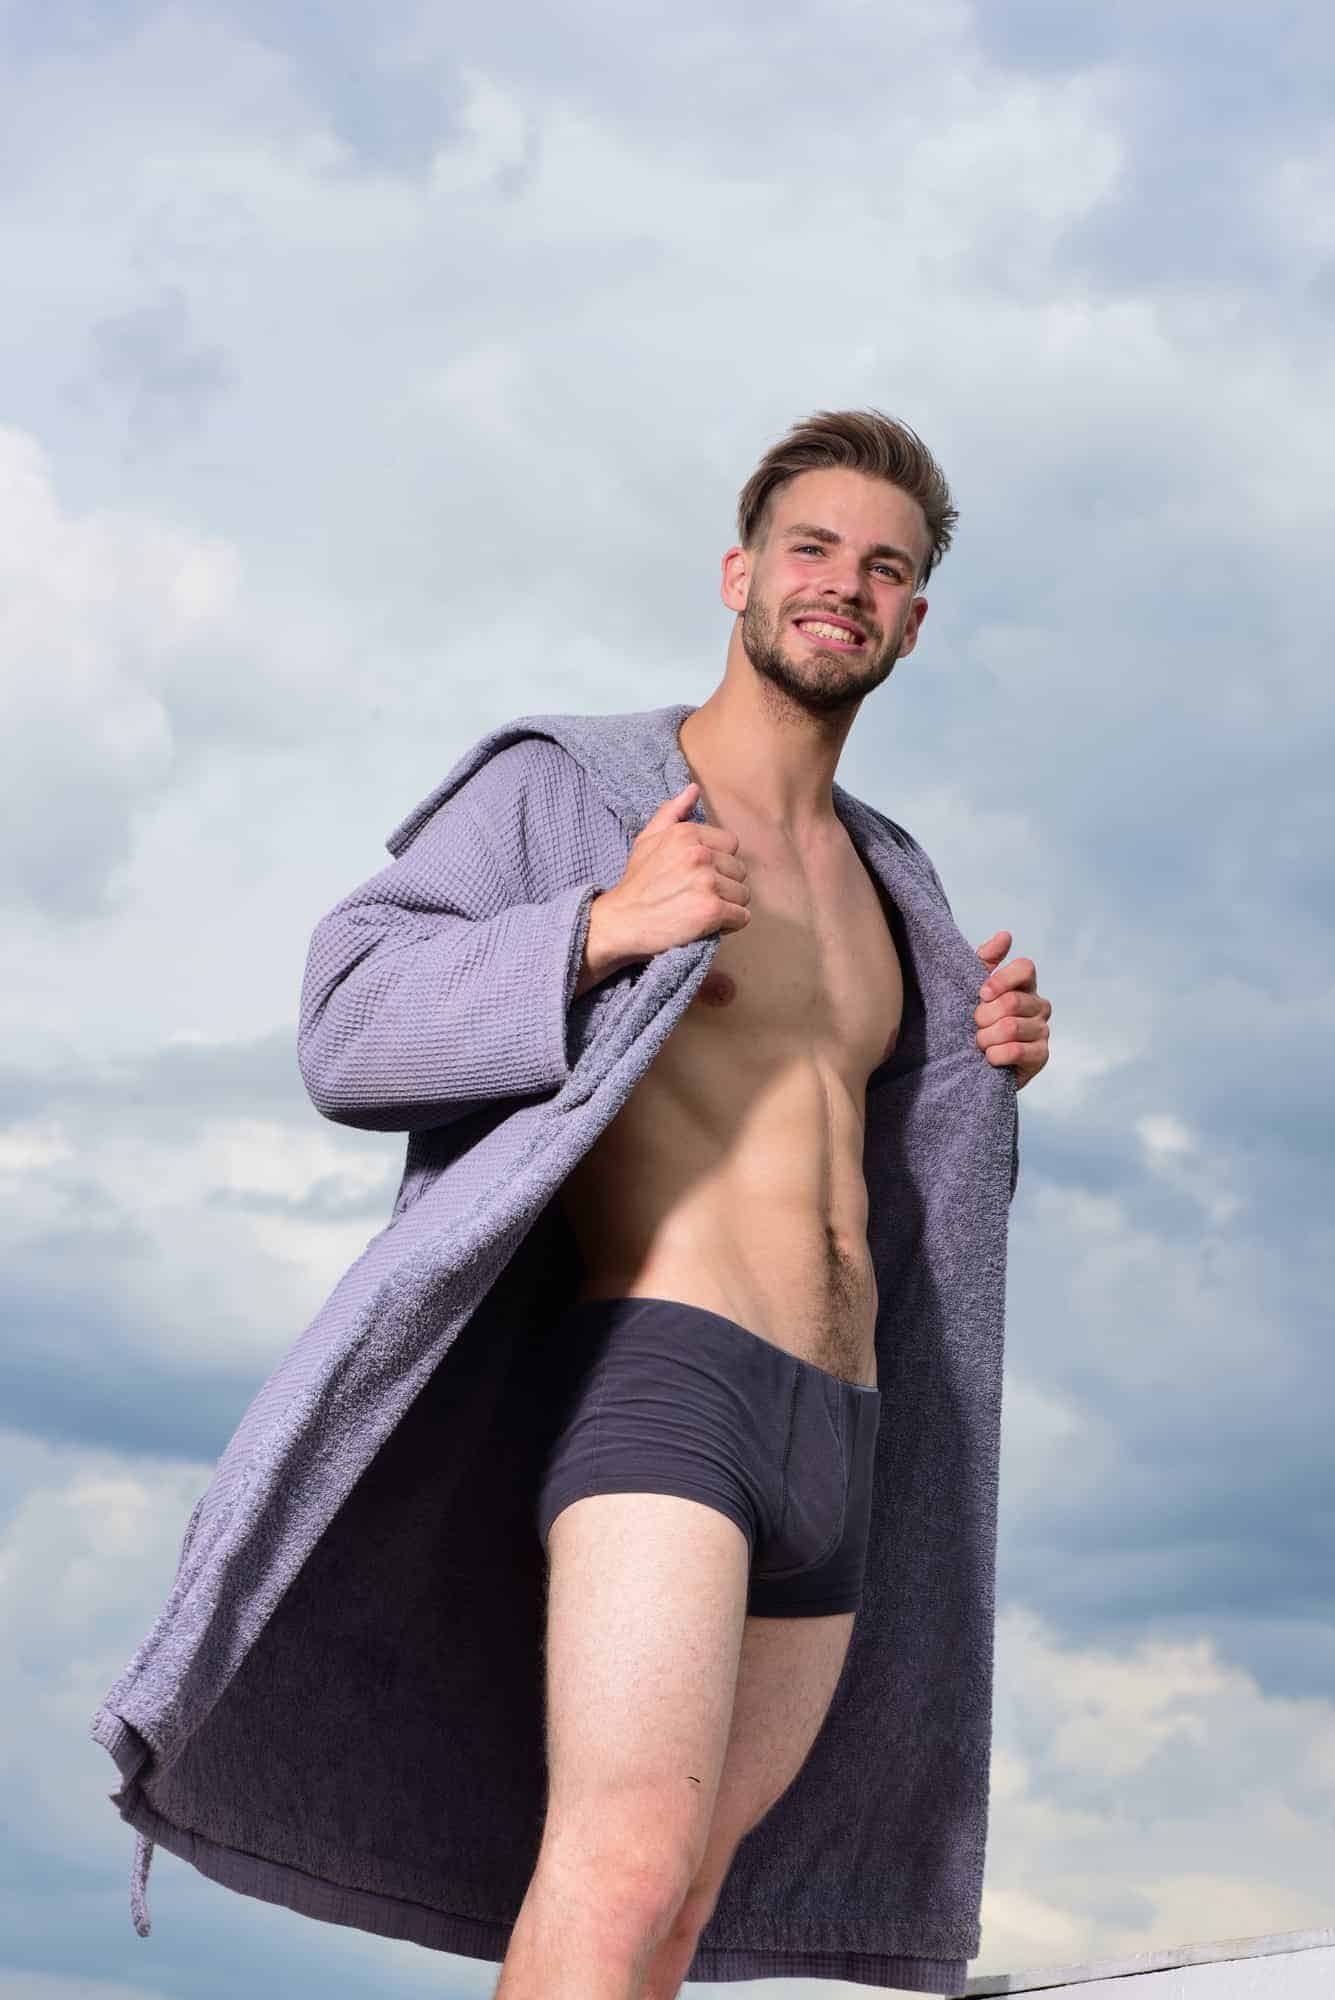 Why Do We Wear Underwear? 9 Reasons Why You Should - The